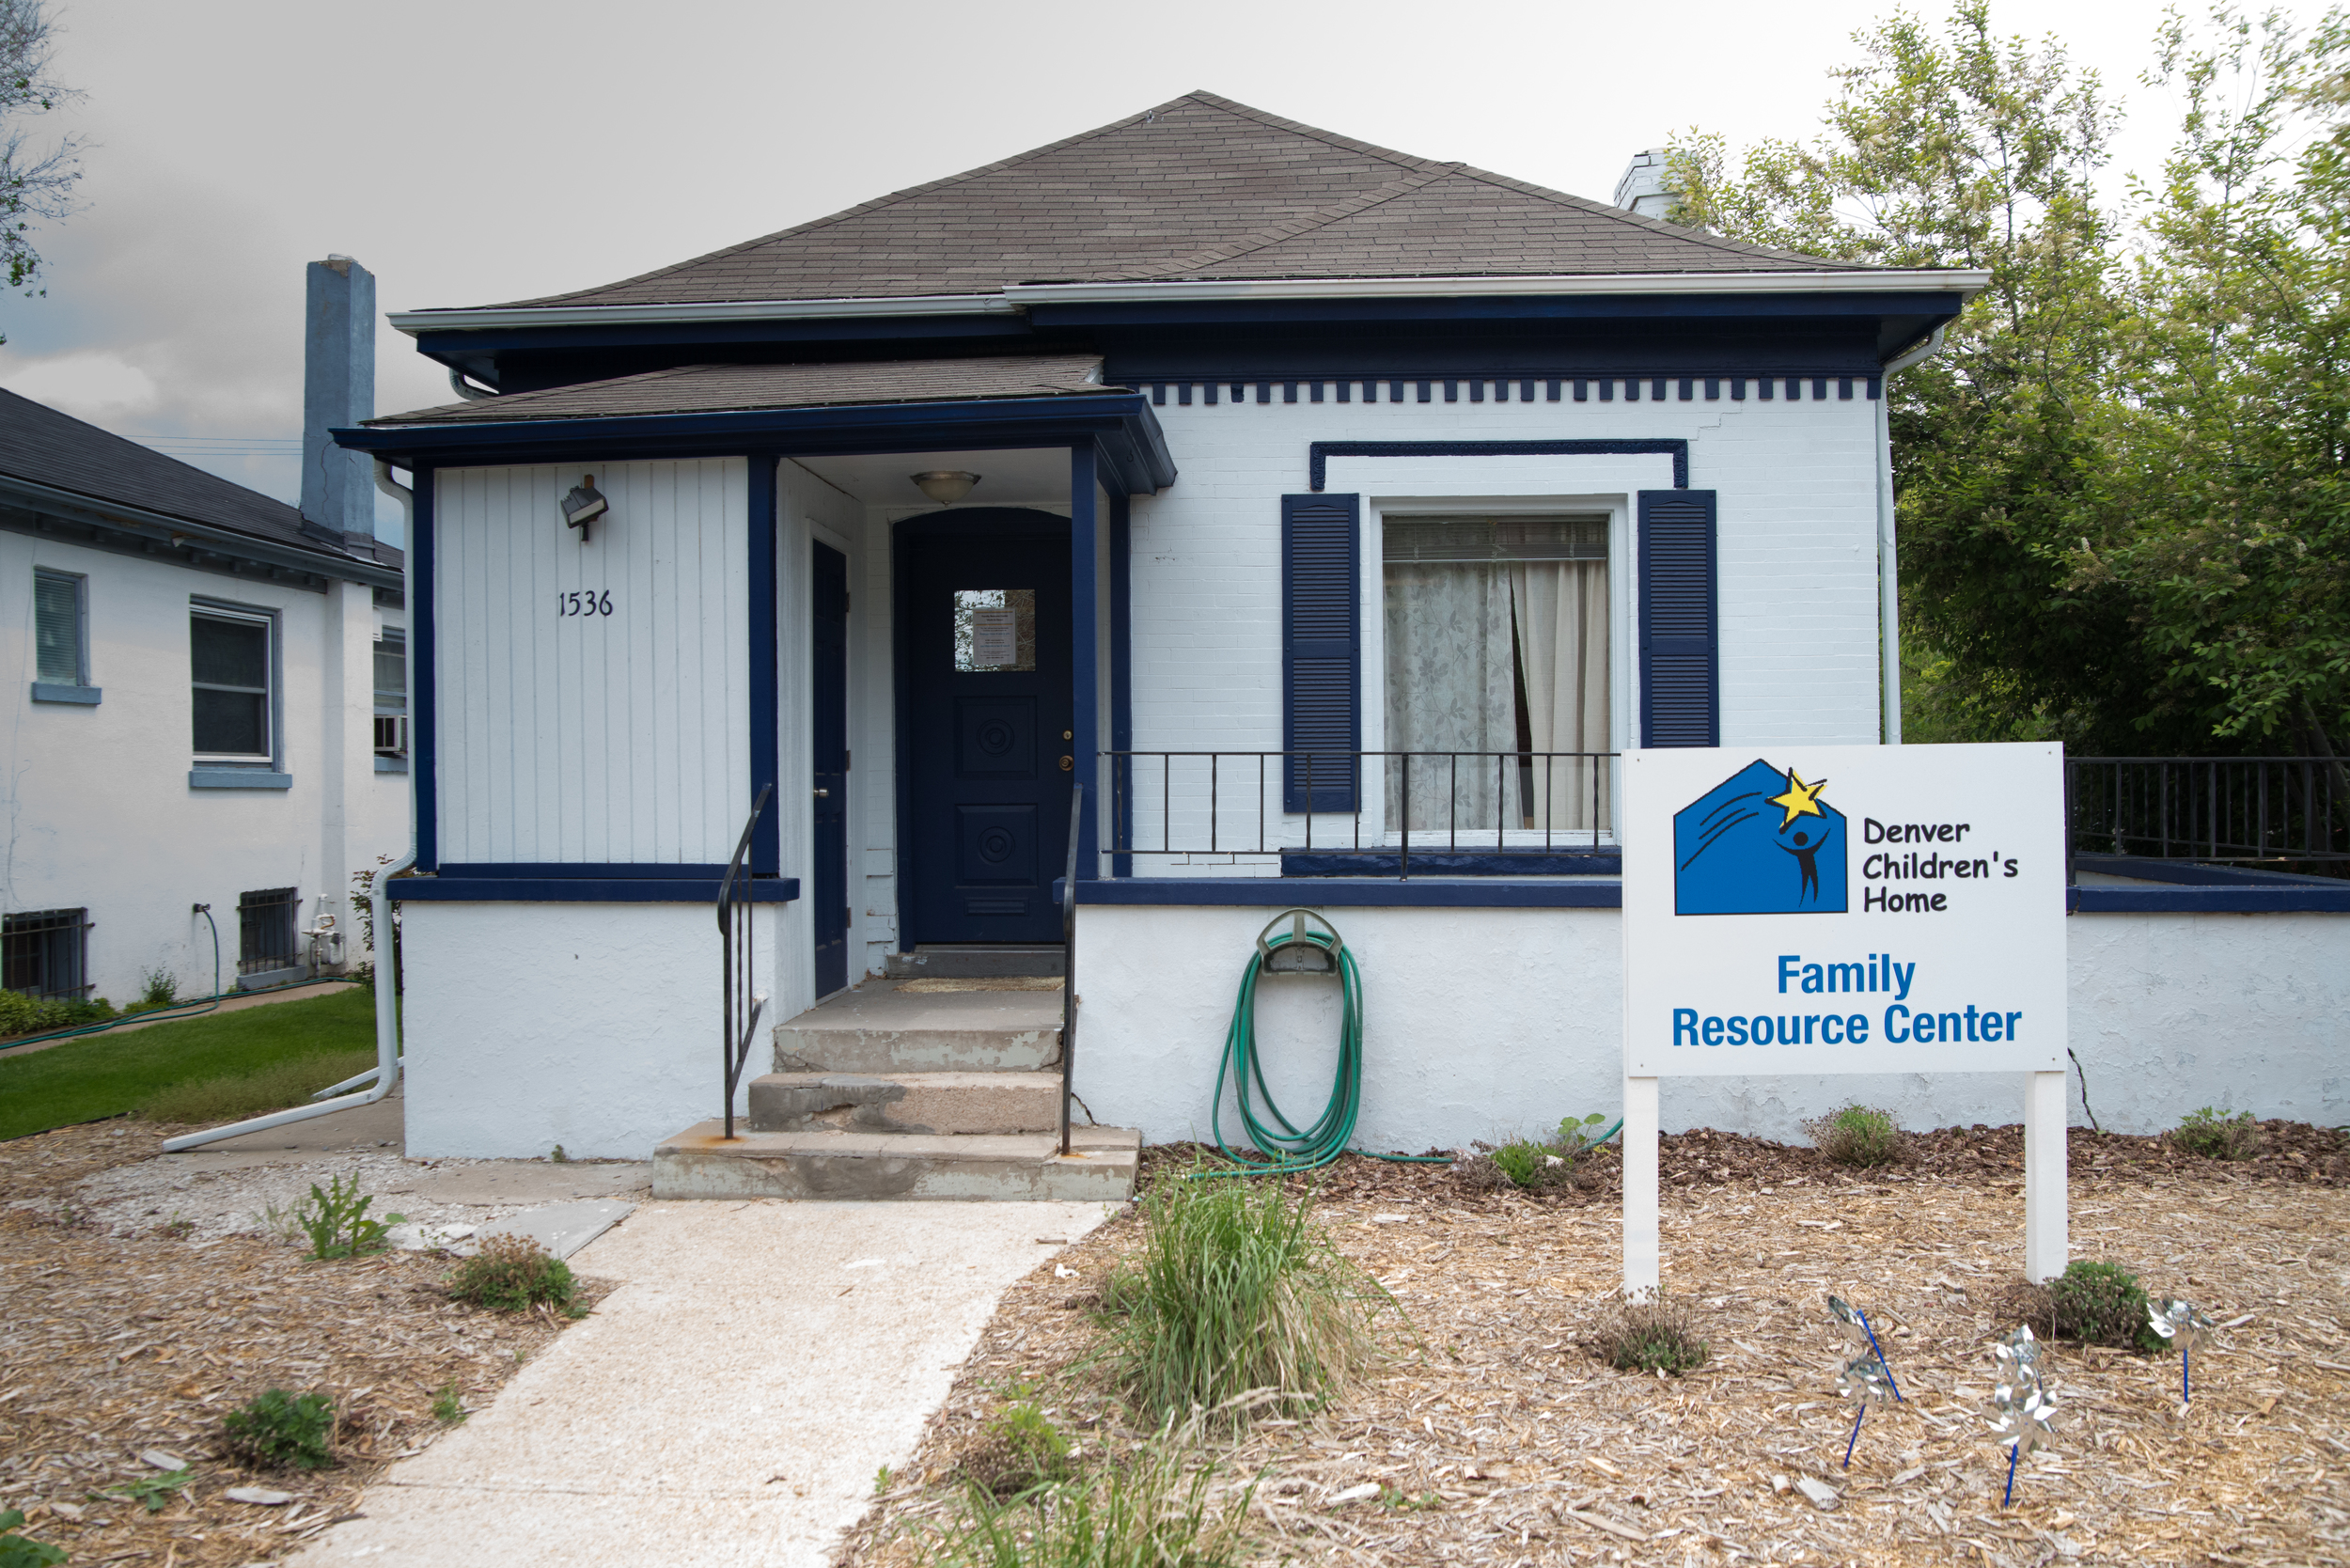 The Family Resource Center houses the Community-Based Services team of outreach staff and in-home therapists.